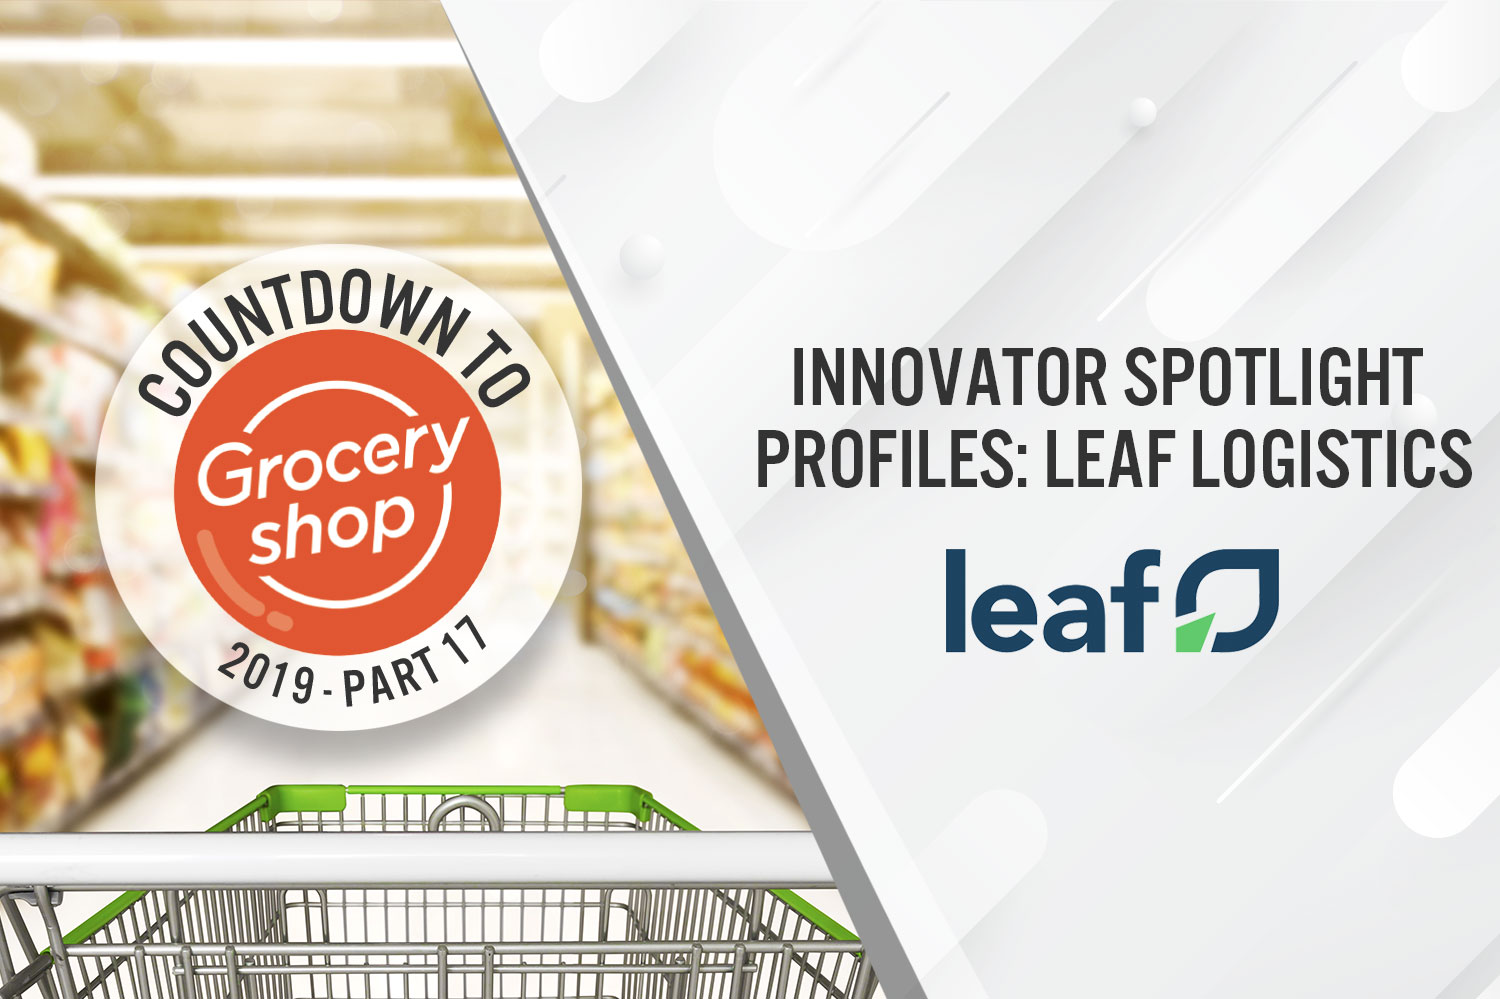 Countdown to Groceryshop 2019: Innovator Spotlight Profiles